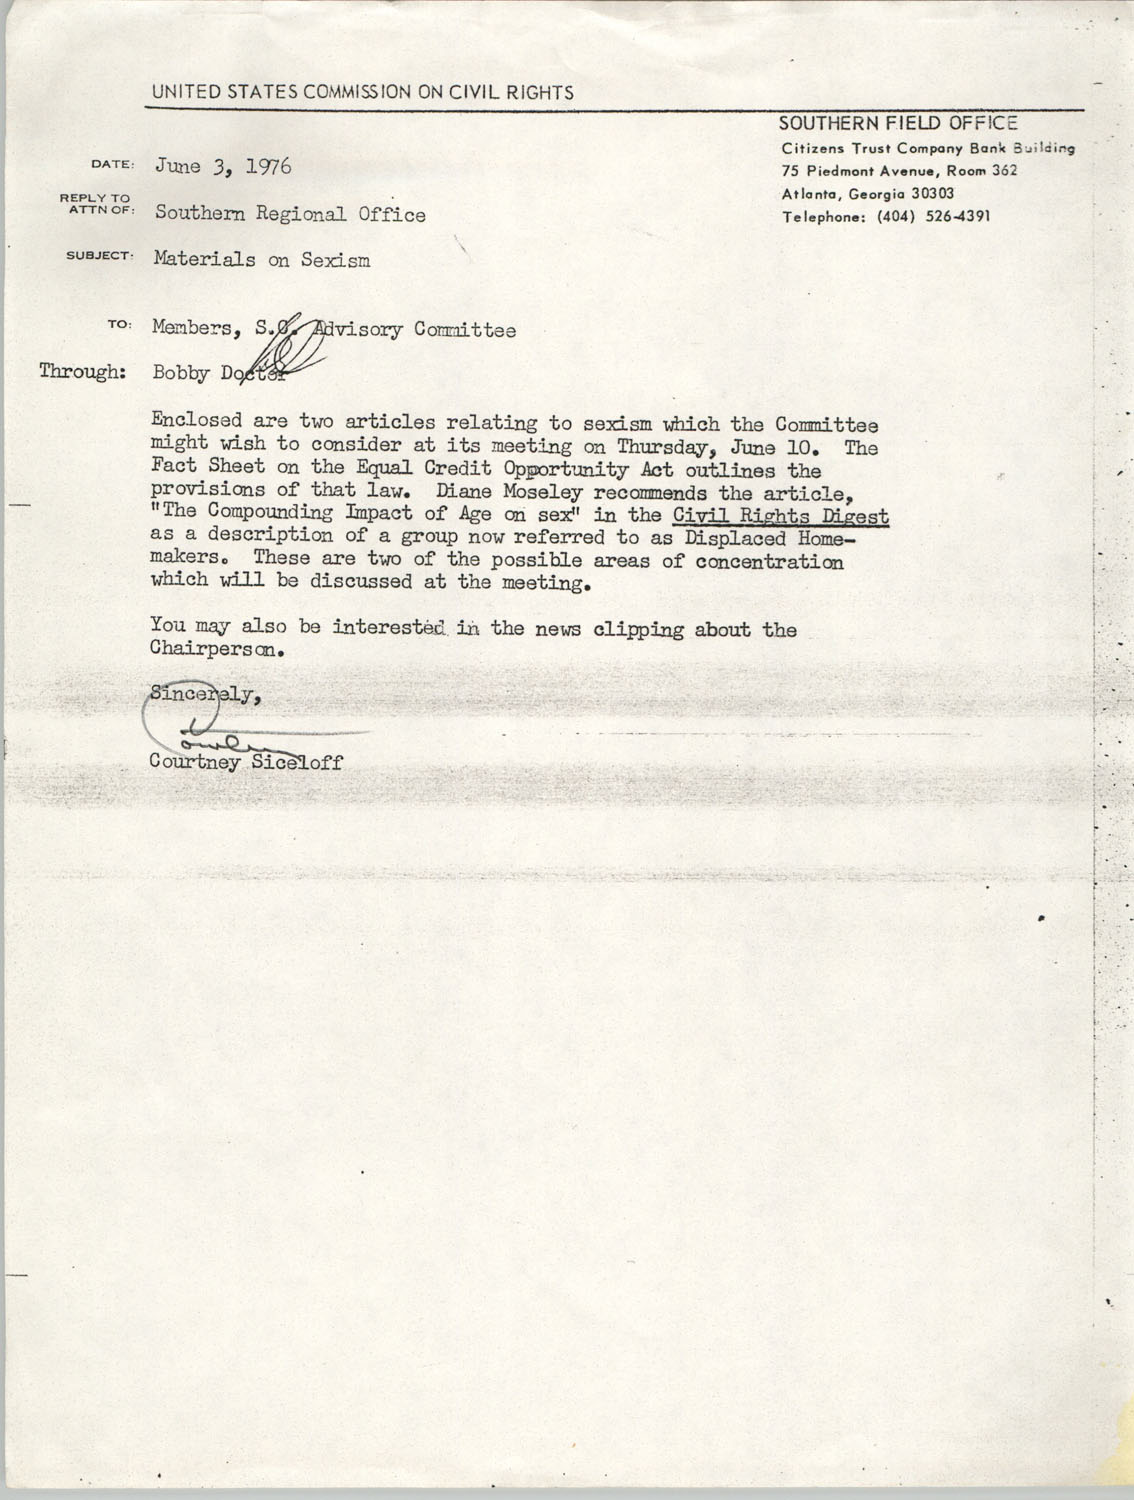 Memorandum from Courtney Siceloff to South Carolina Advisory Committee, June 3, 1976